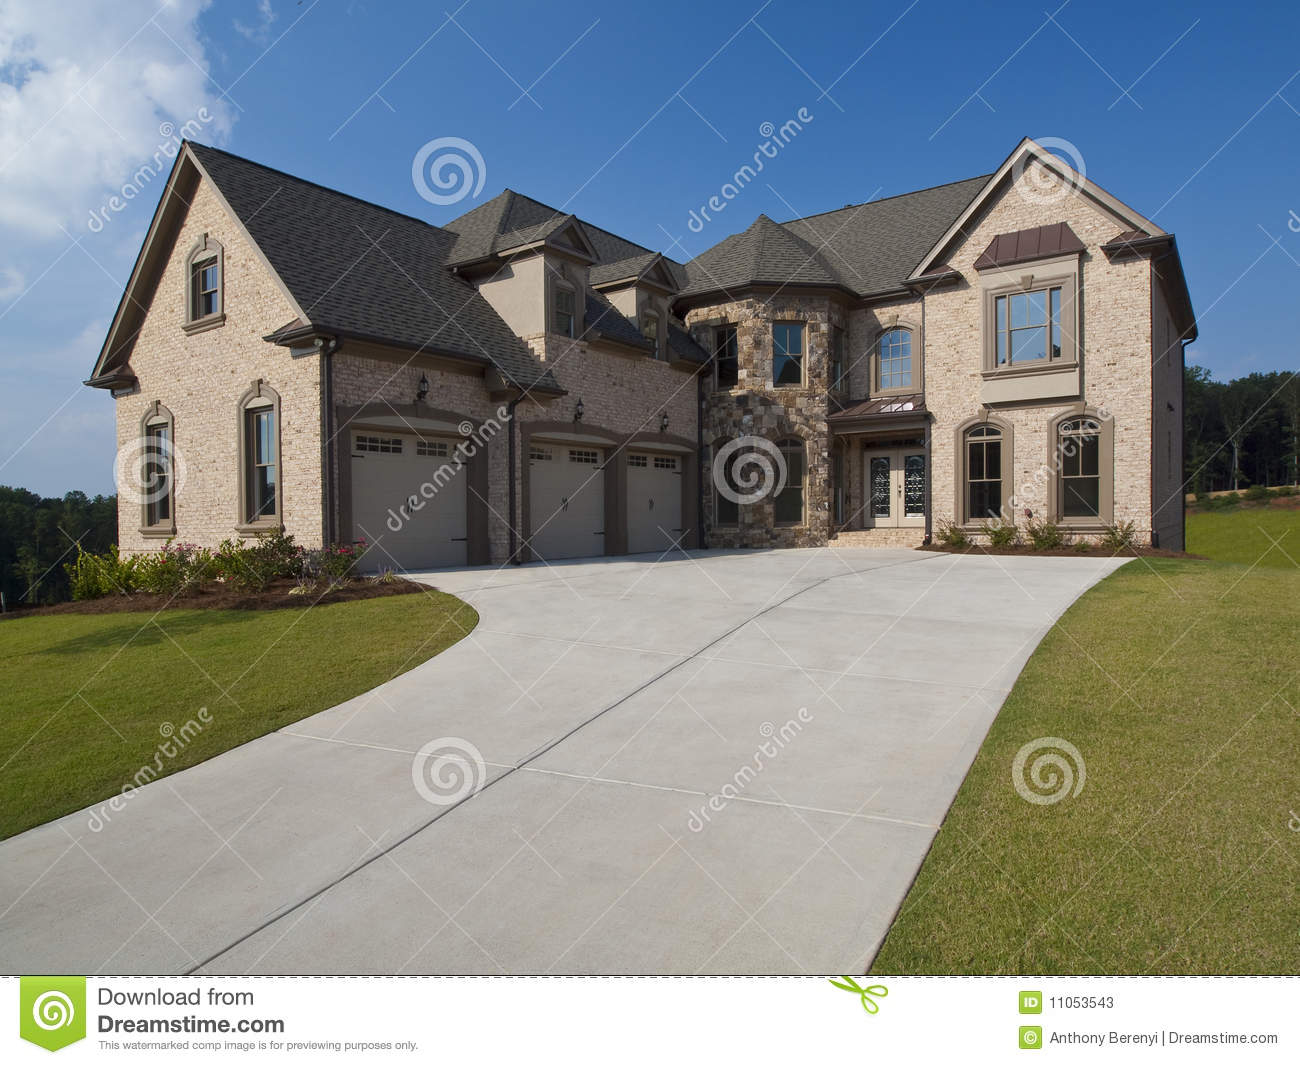 Model home luxury house with driveway stock image image for Luxury home models